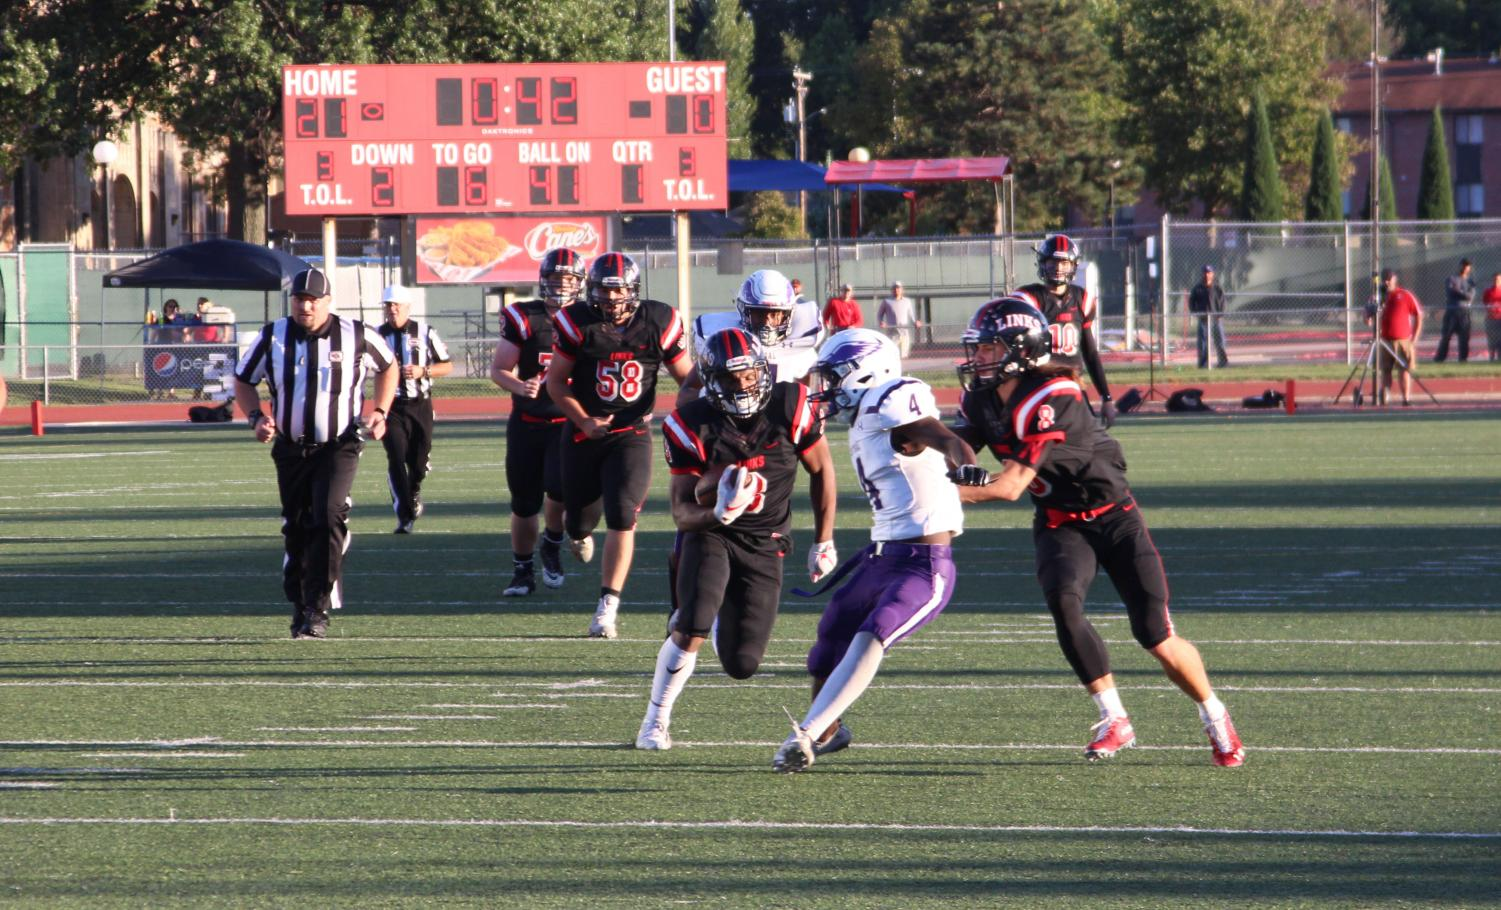 #3 Isaiah Alford runs the ball during the game against Omaha Central at Beechner Athletic Complex on Friday, September 21st, 2018. Photo by Zeke Williams